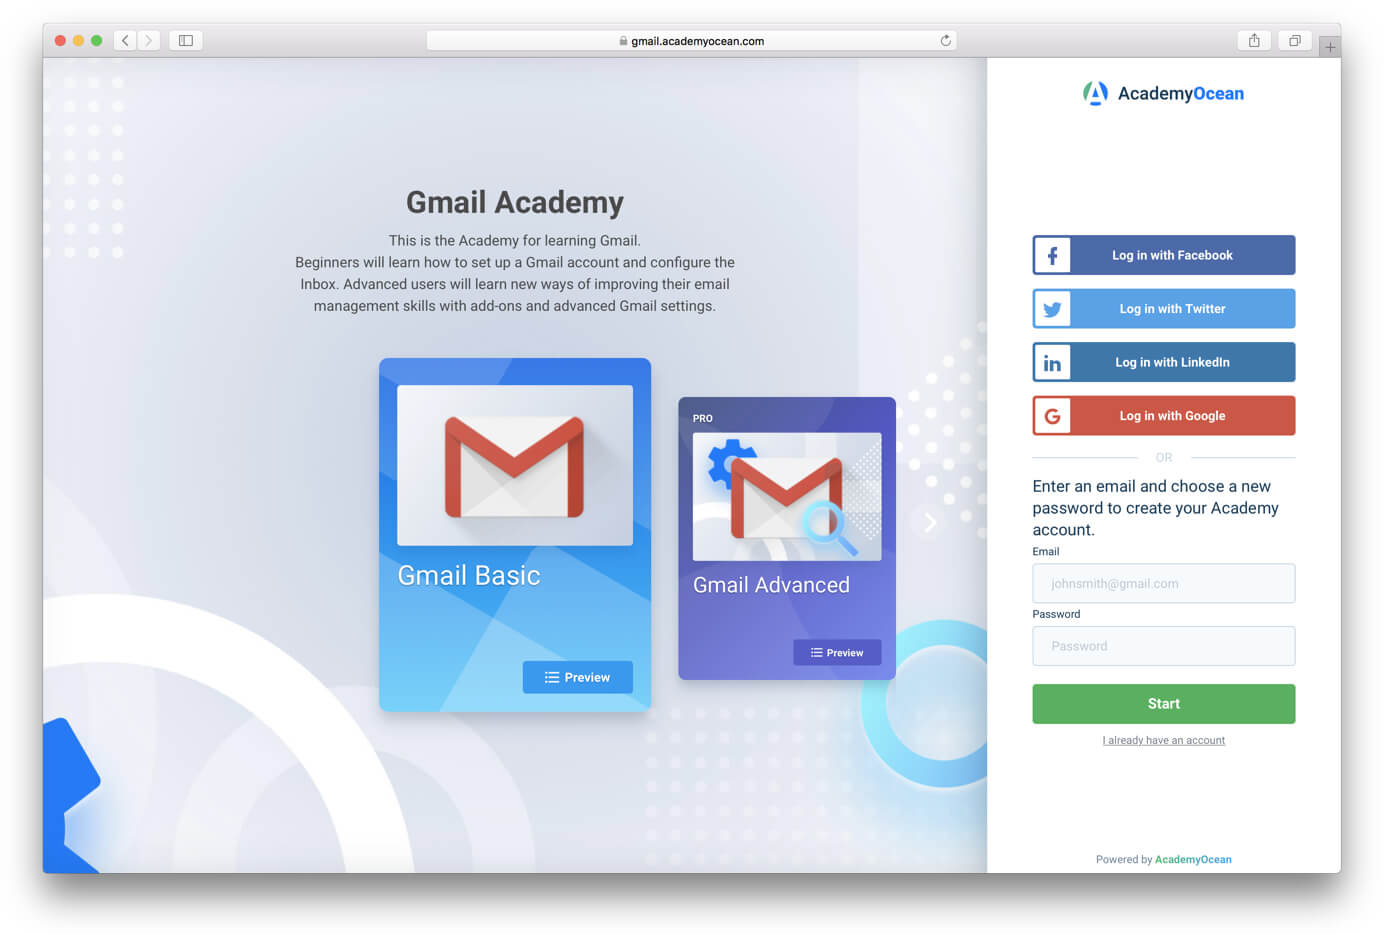 a screen of Gmail Academy